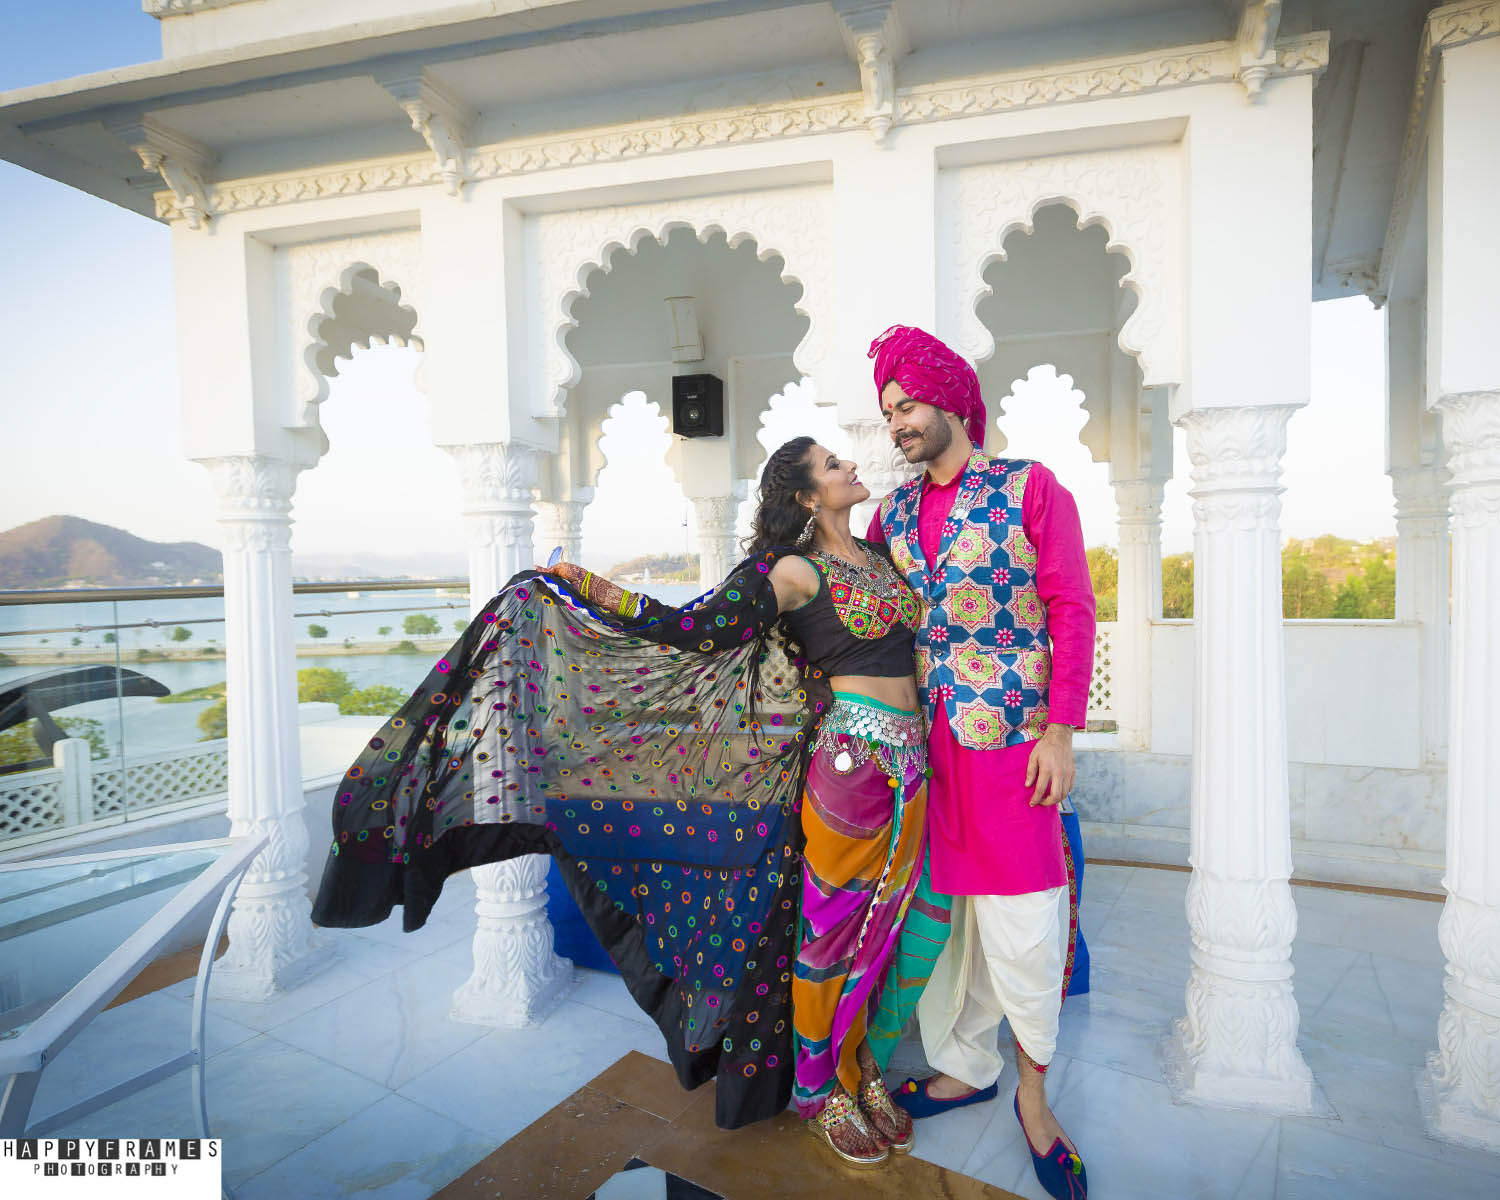 'Coy and Quirky' Wedding Held at Radisson Blu Palace and Spa, Udaipur